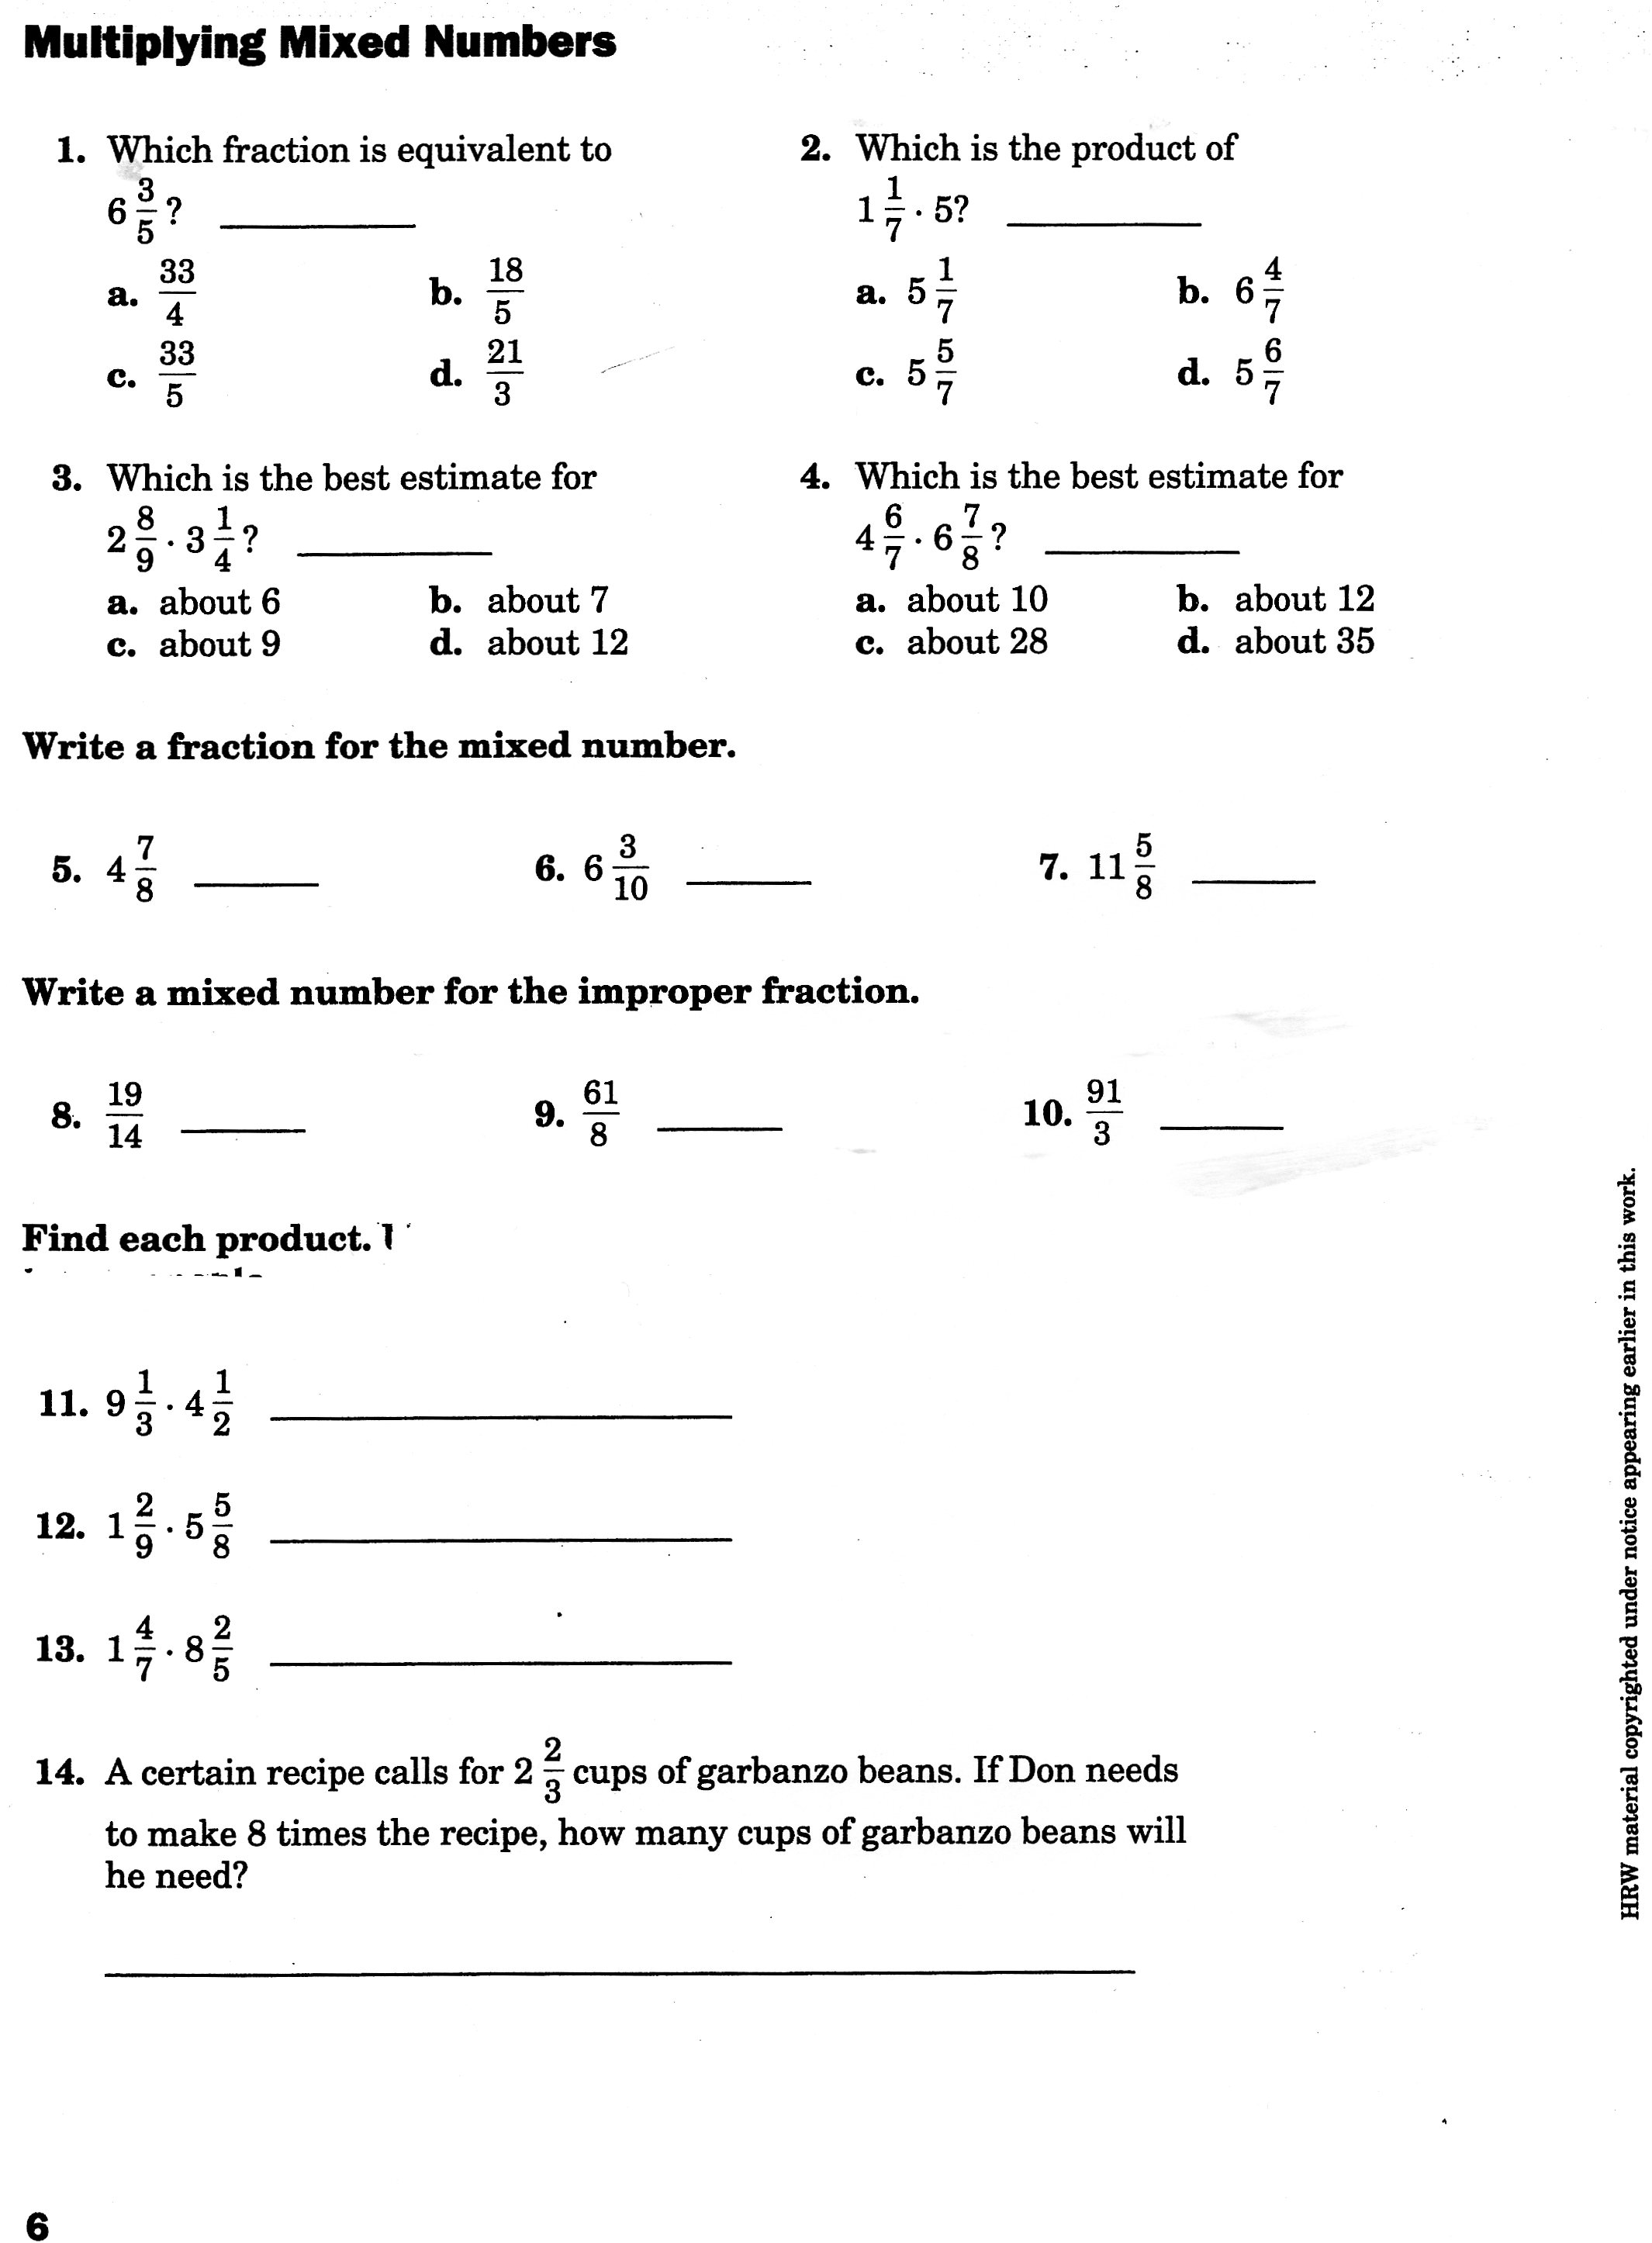 Multiplying Mixed Numbers And Fractions Worksheets. Multiply Mixed ...